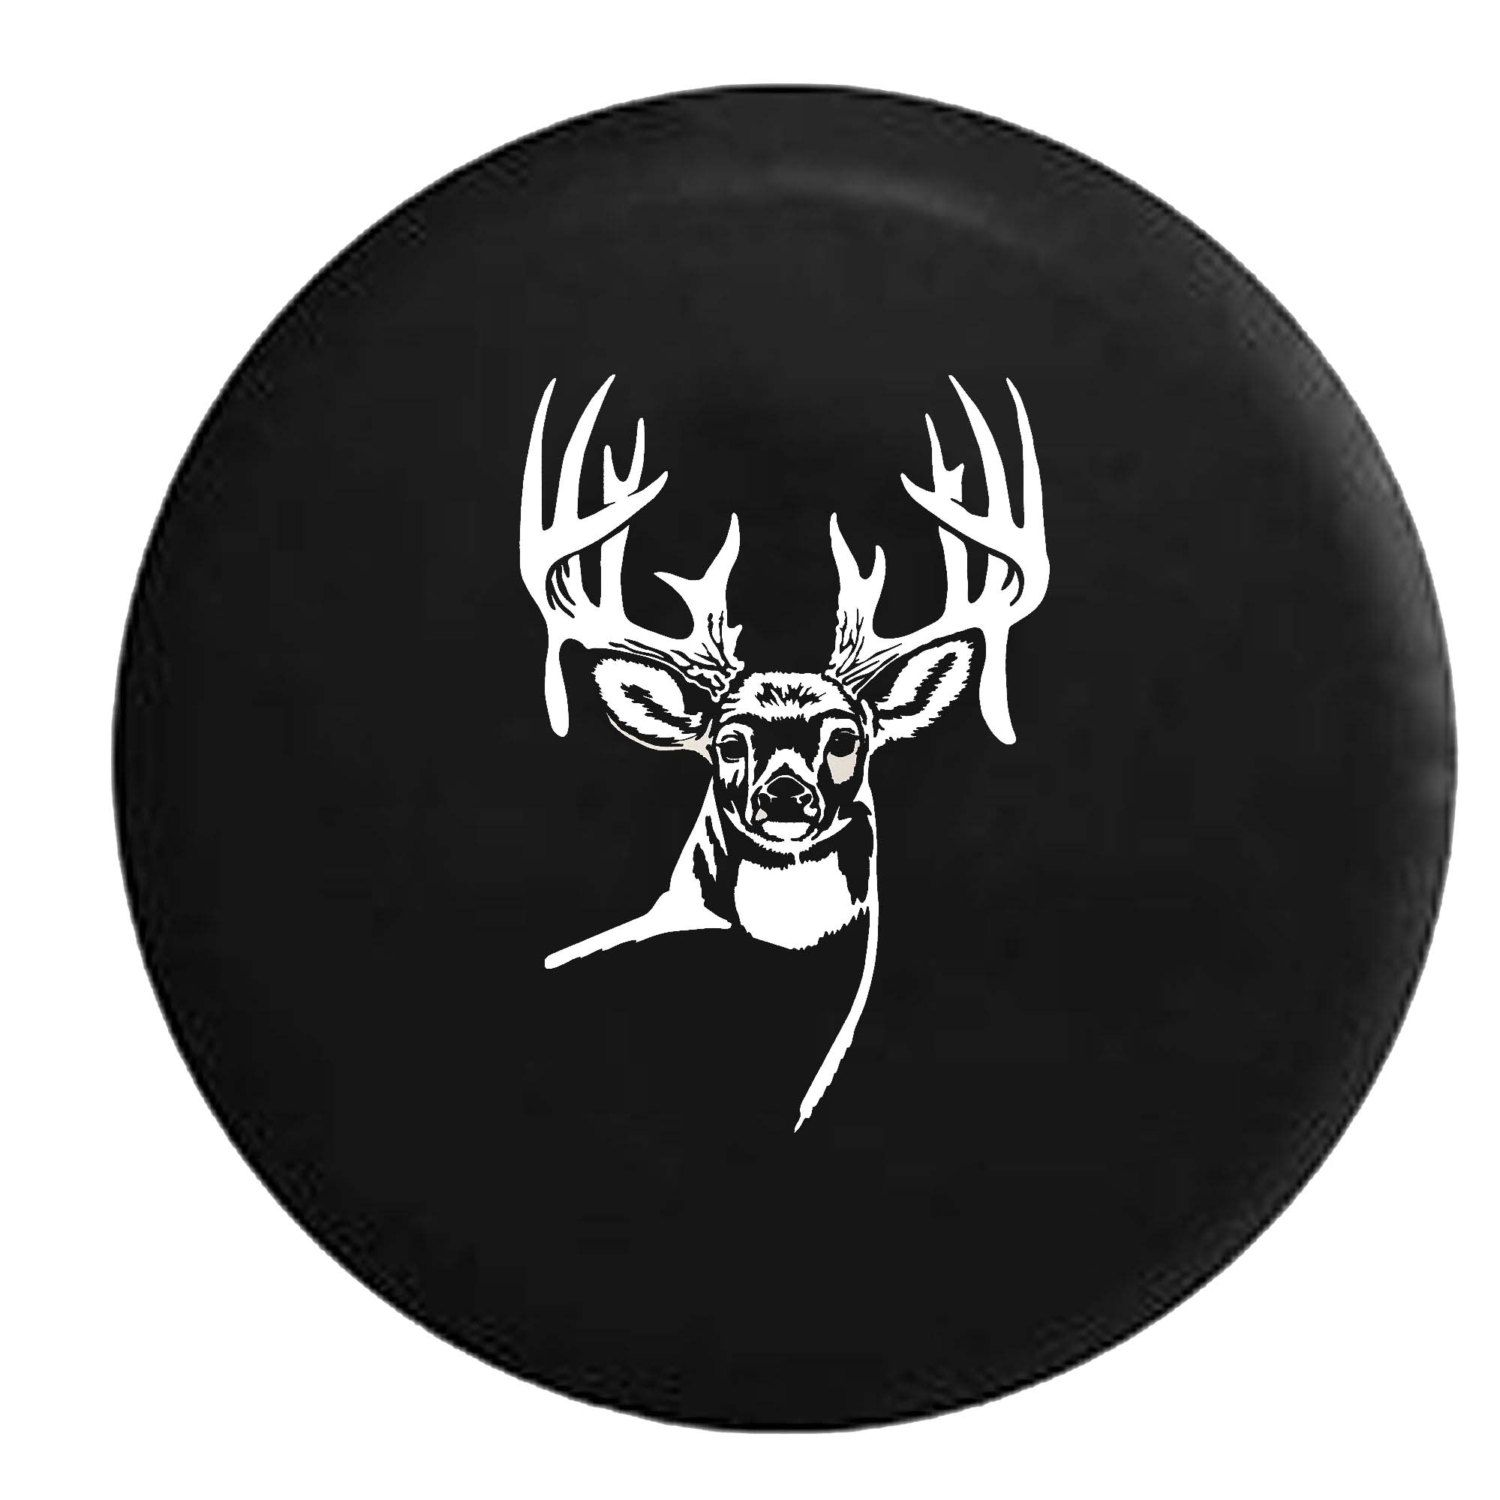 Spare Tire Cover Deer With Antlers Looking Forward Hunting Etsy